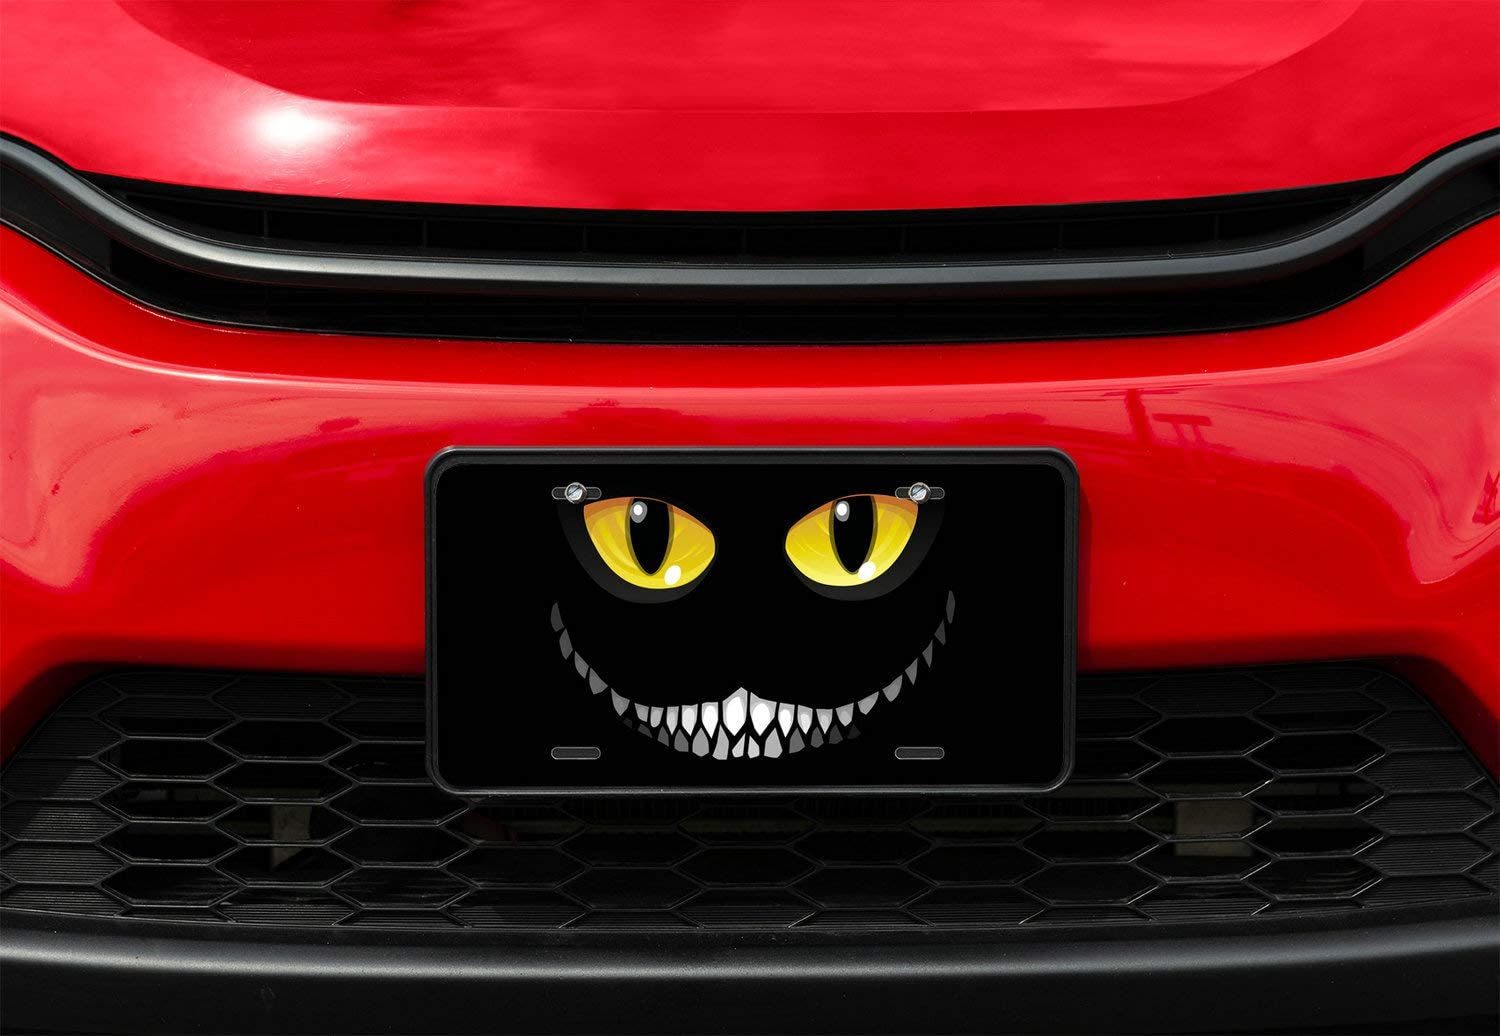 Amcove Black Cat in Darkness License Plate Glowing Eyes and a Sinister Smile Decorative Car Front License Plate,Vanity Tag,Metal Car Plate,Aluminum Novelty License Plate,6 X 12 Inch